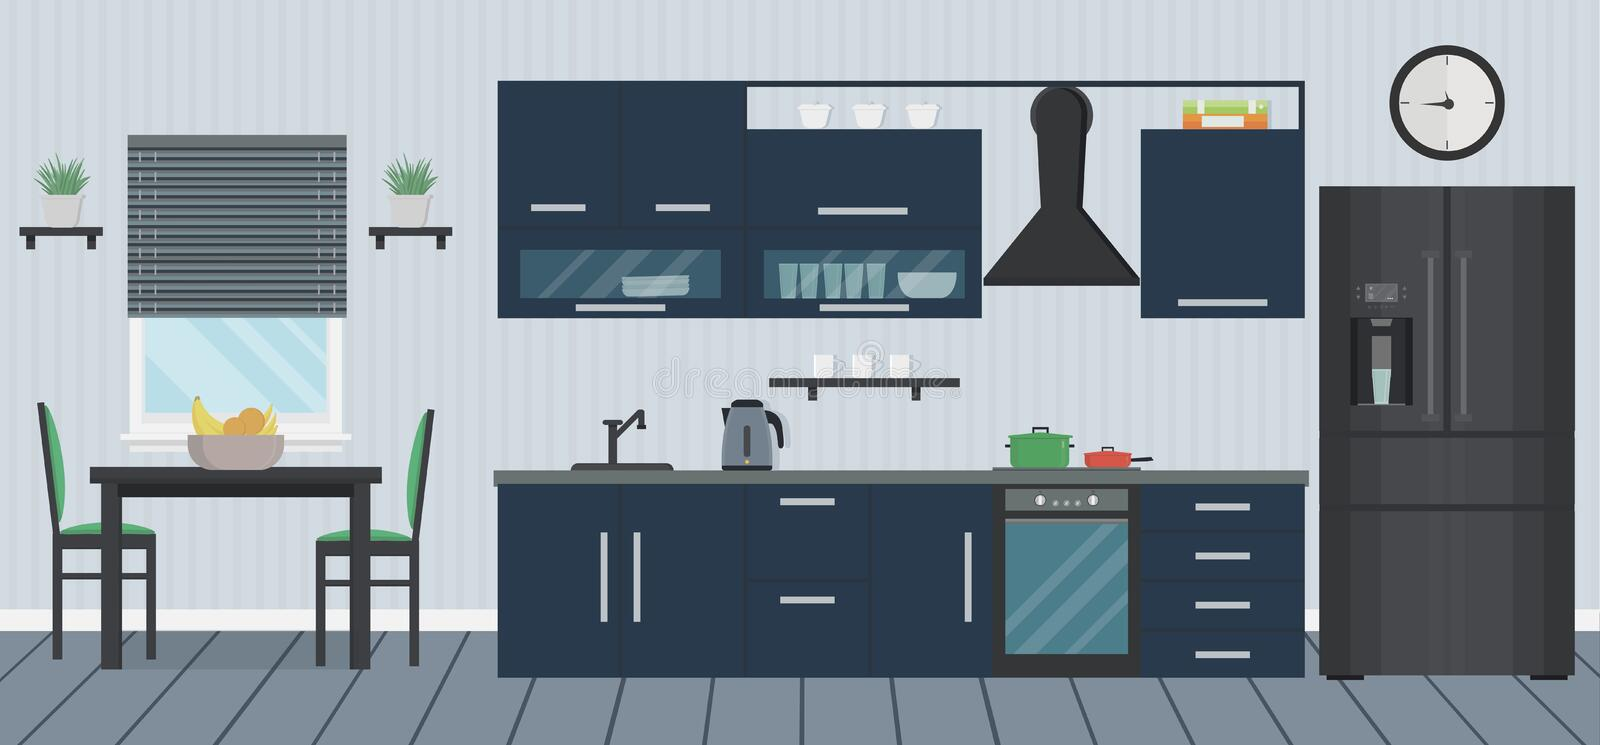 Blue kitchen with modern appliance, sink, furniture and dishes. Cooking devices. Table and chairs. Room interior. Home design. royalty free illustration